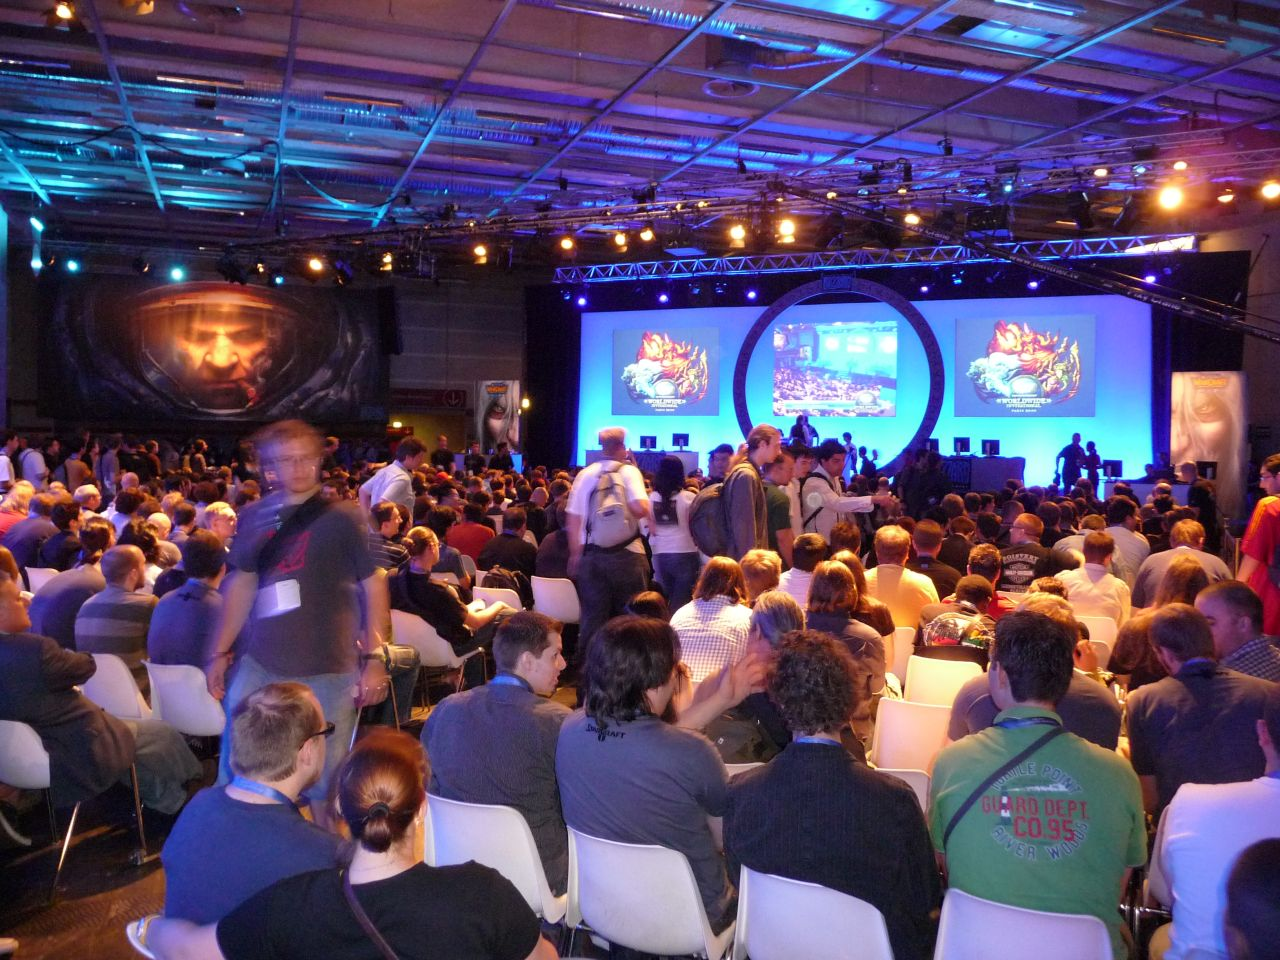 Blizzard Invitational: Höllenfürst-Fest und Gamemaster-Gulag - Blizzard Worldwide Invitational